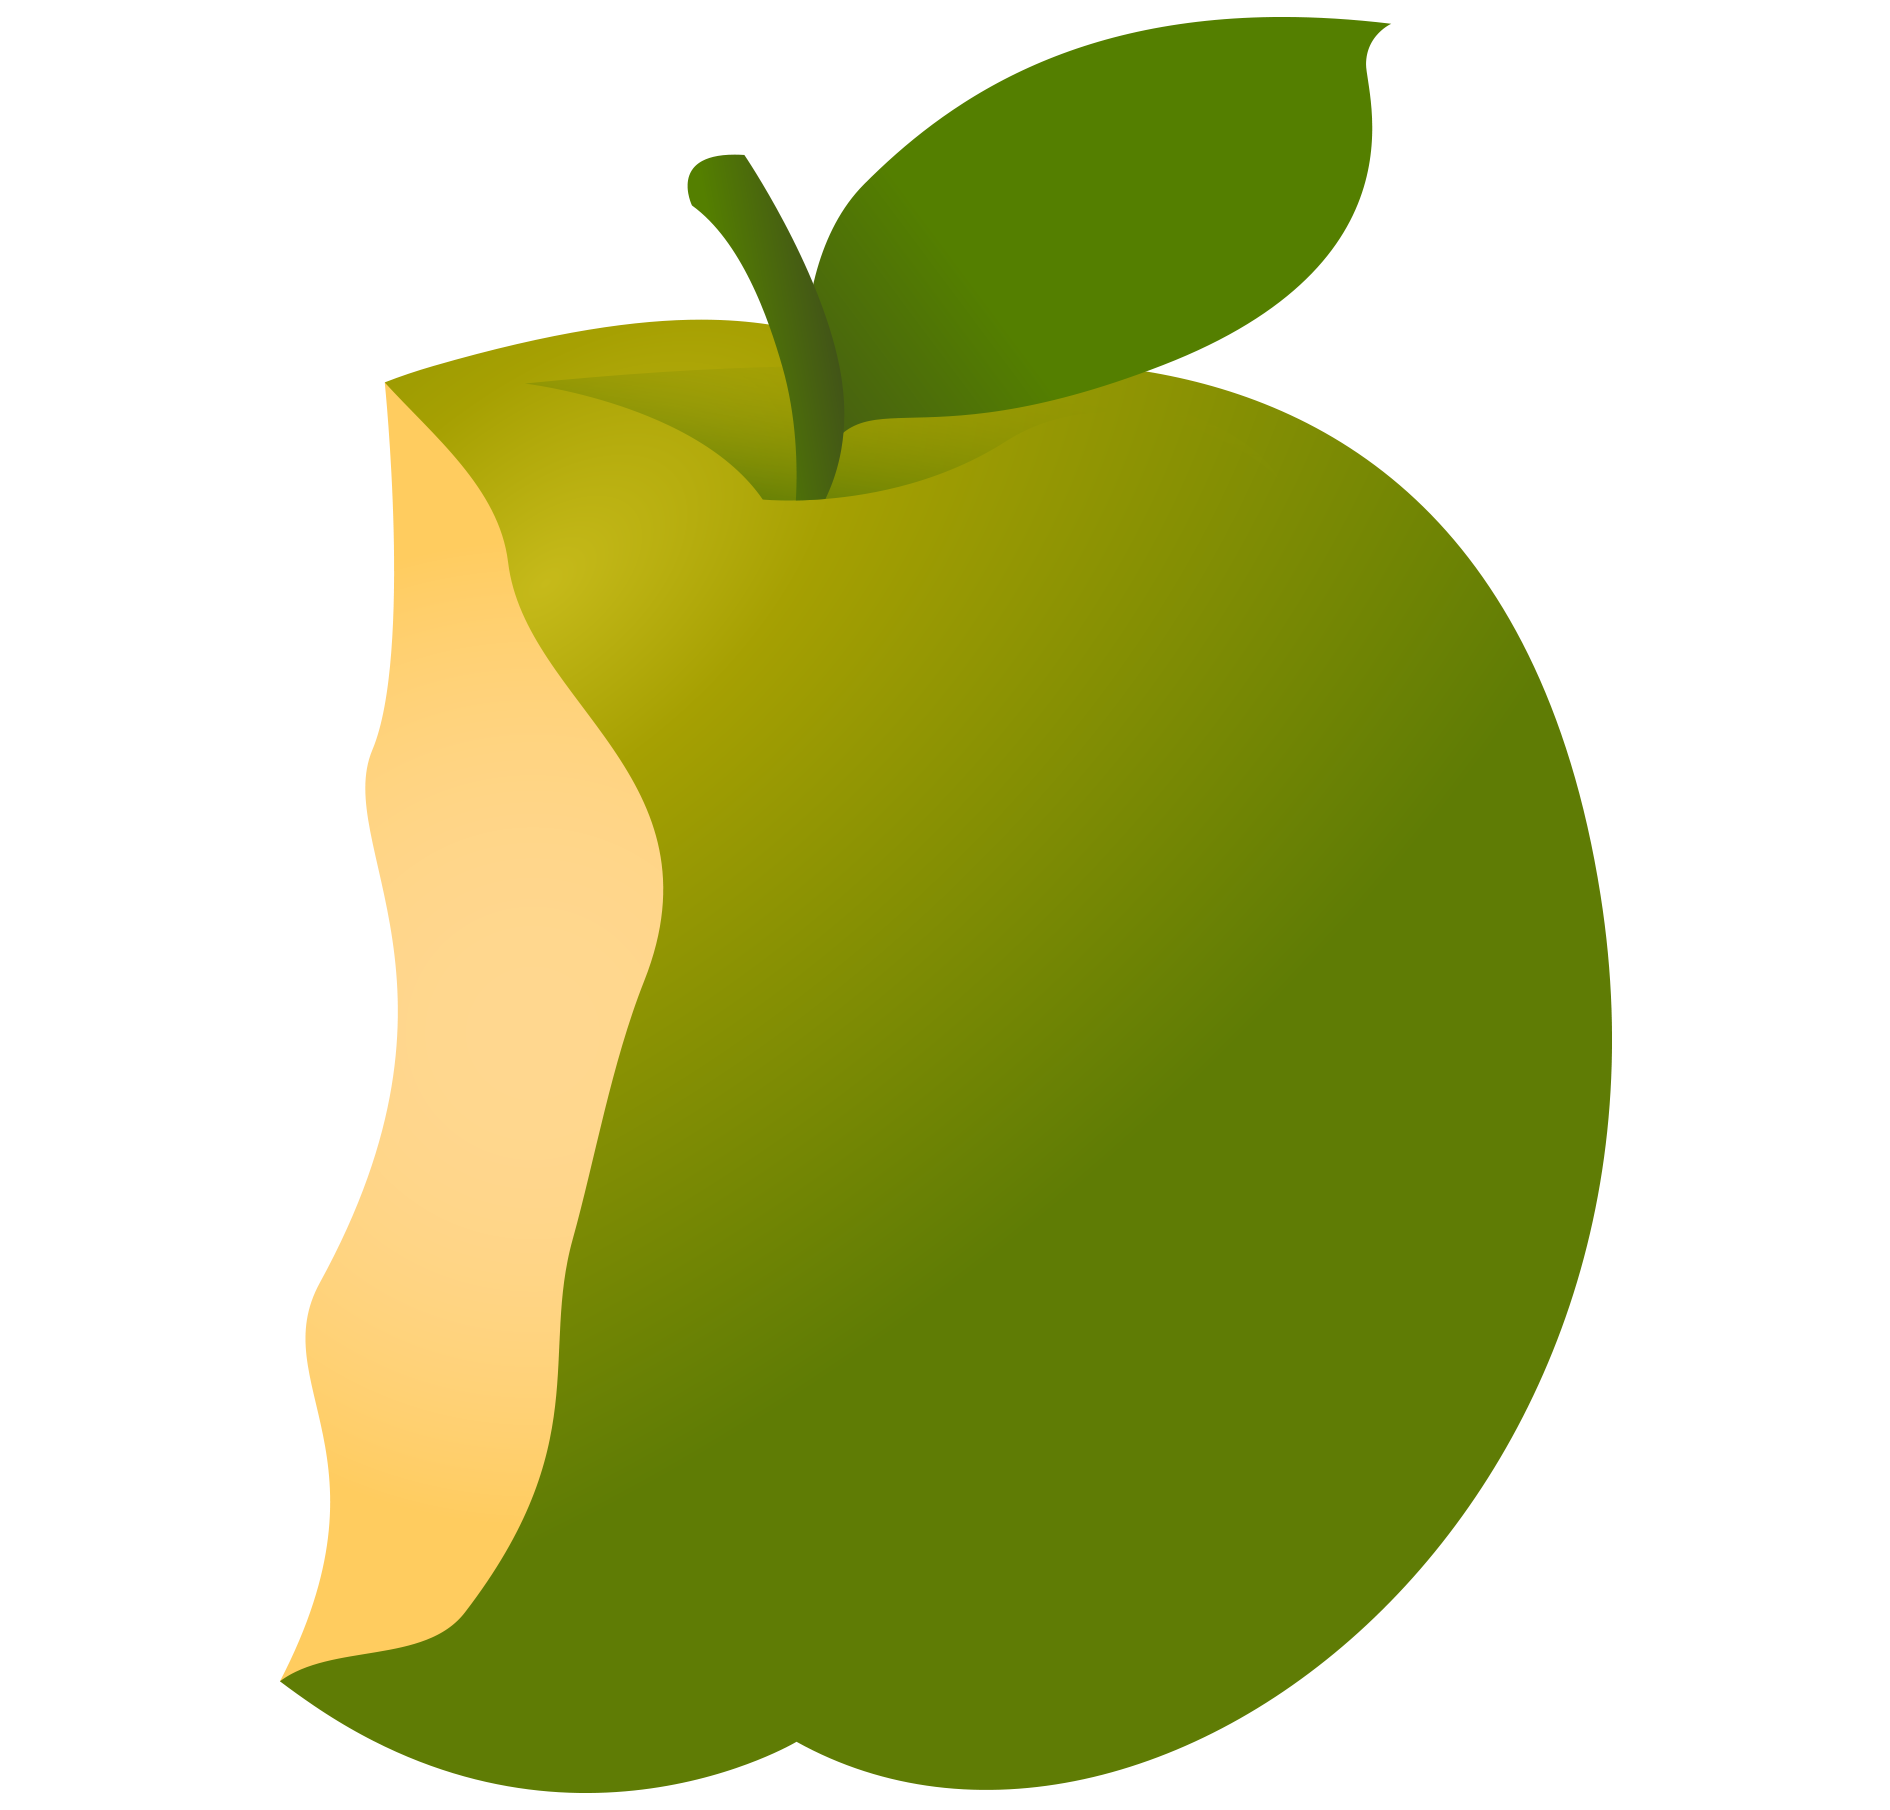 Apple with bite out of it clipart clip art View Apple_Bite.png Clipart - Free Nutrition and Healthy Food Clipart clip art